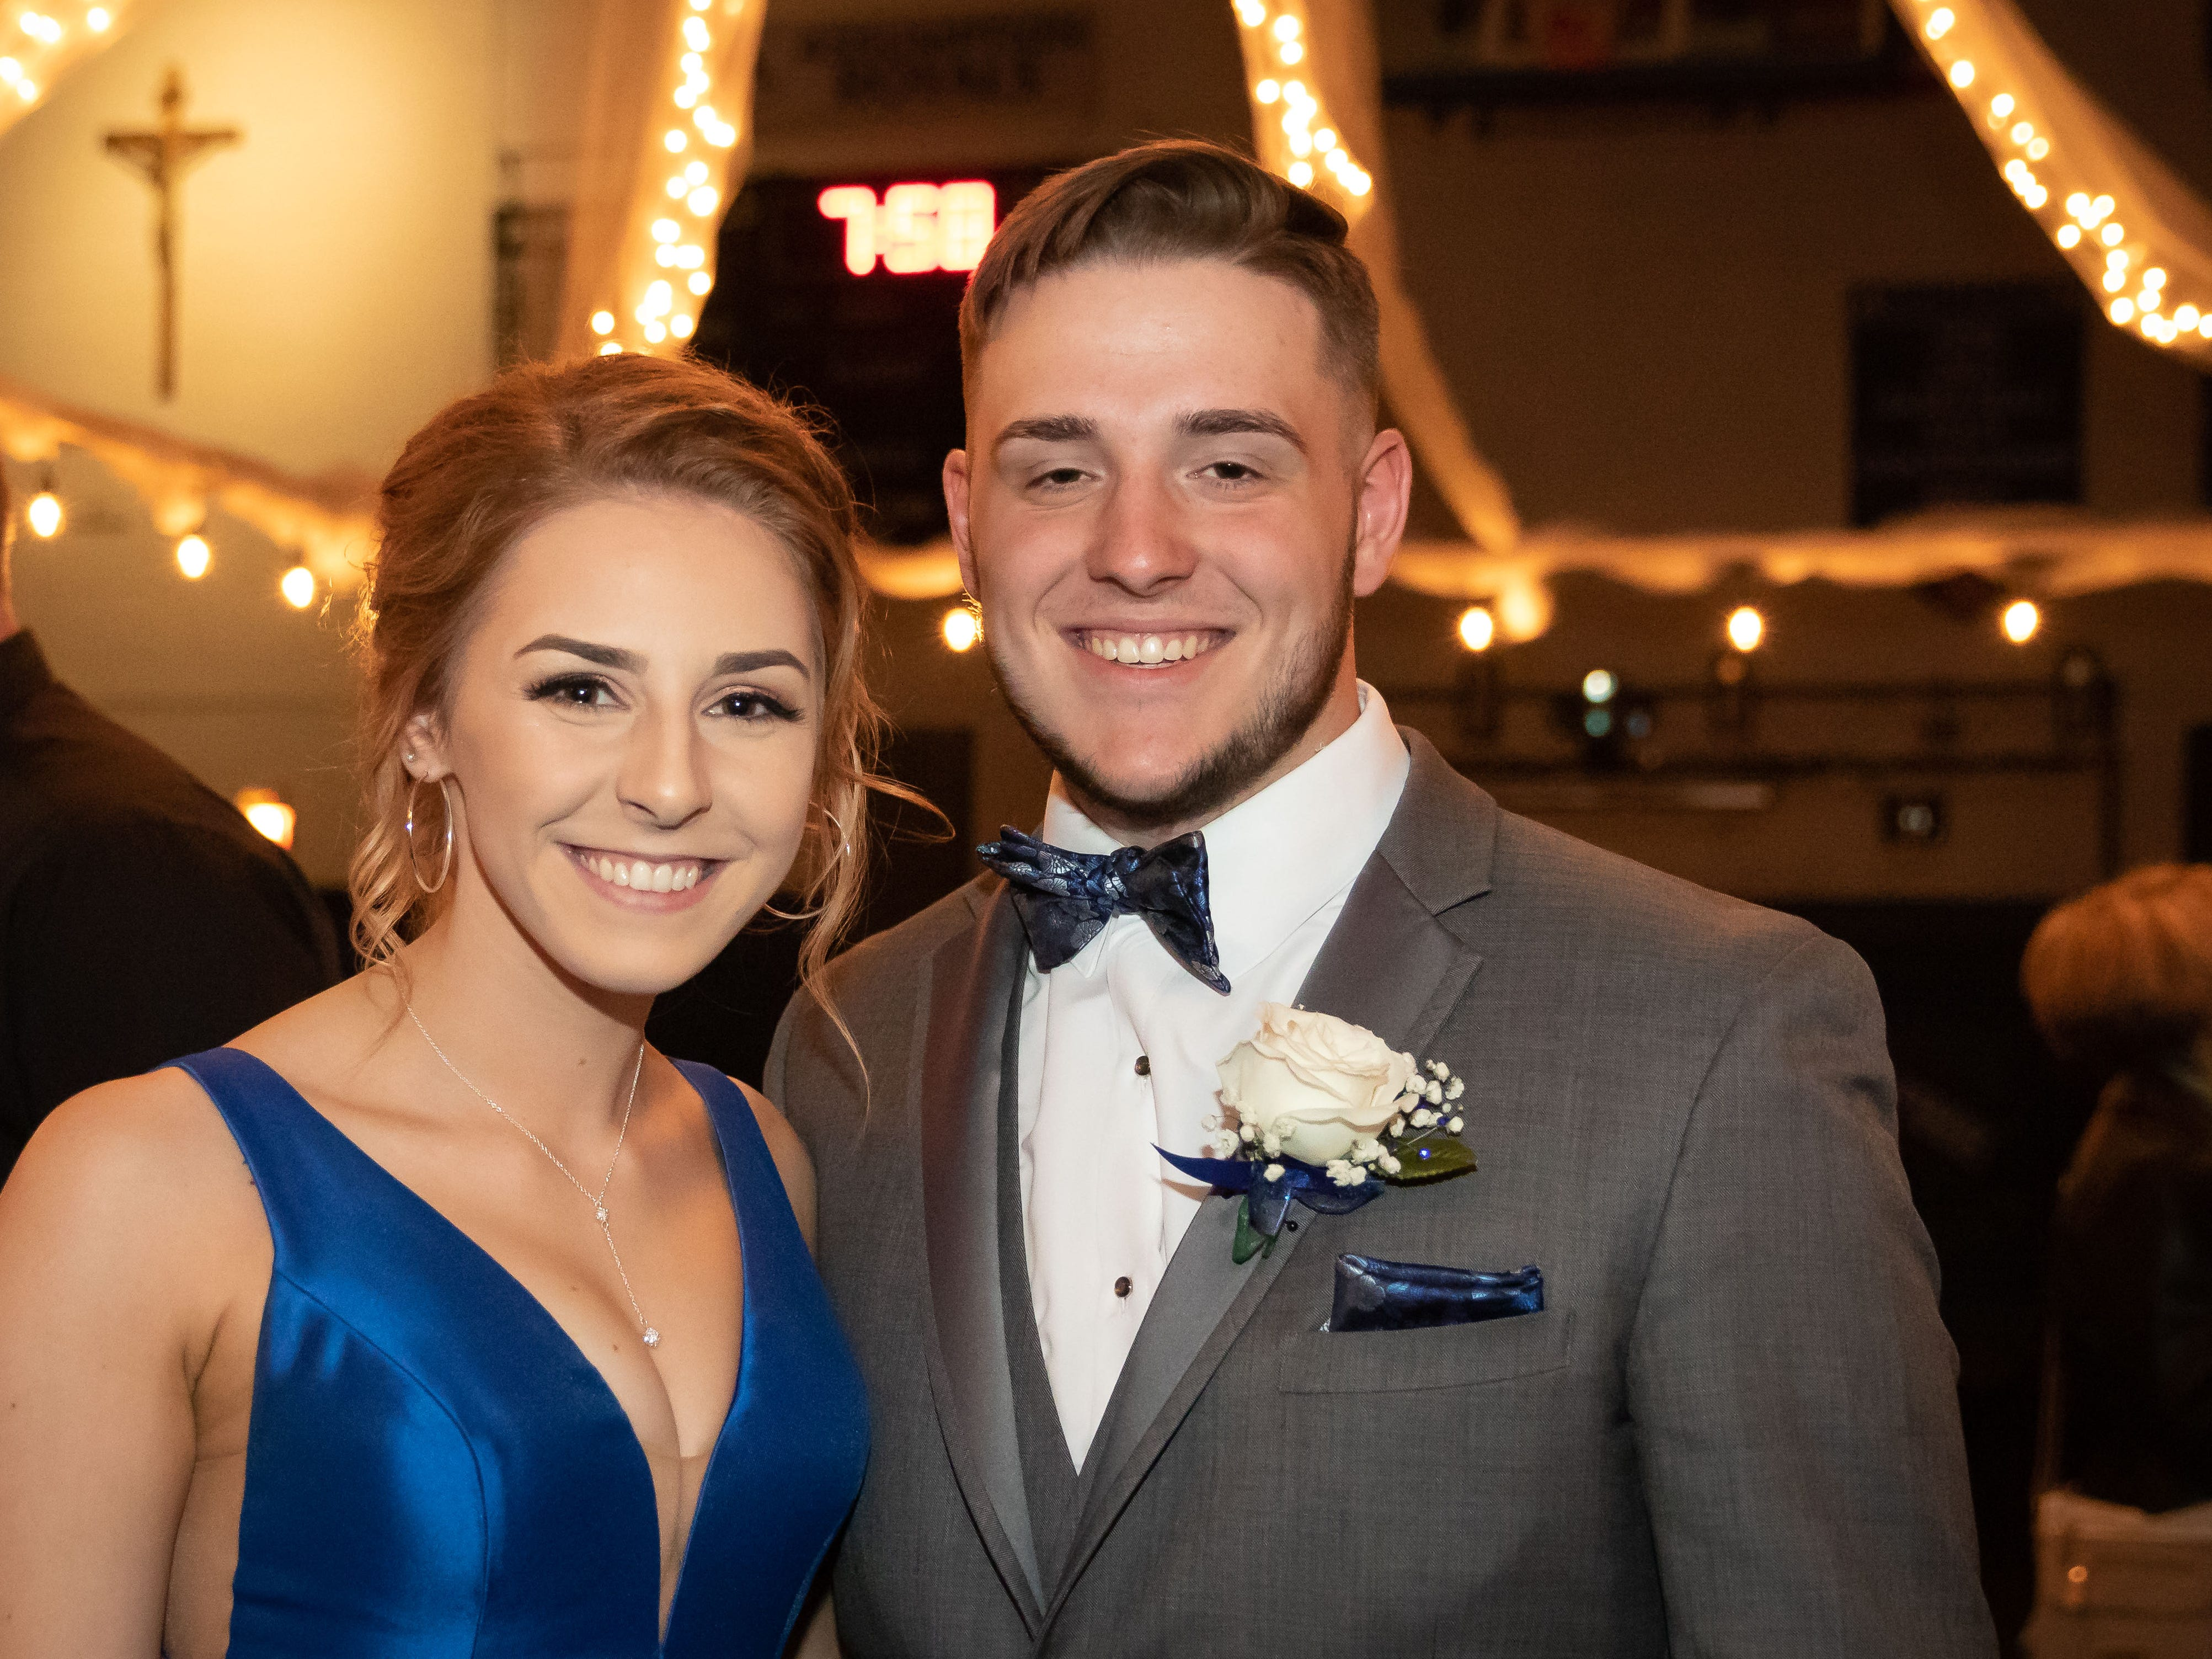 The Assumption High School prom was held Saturday, April 27, 2019, at Assumption High School in Wisconsin Rapids.